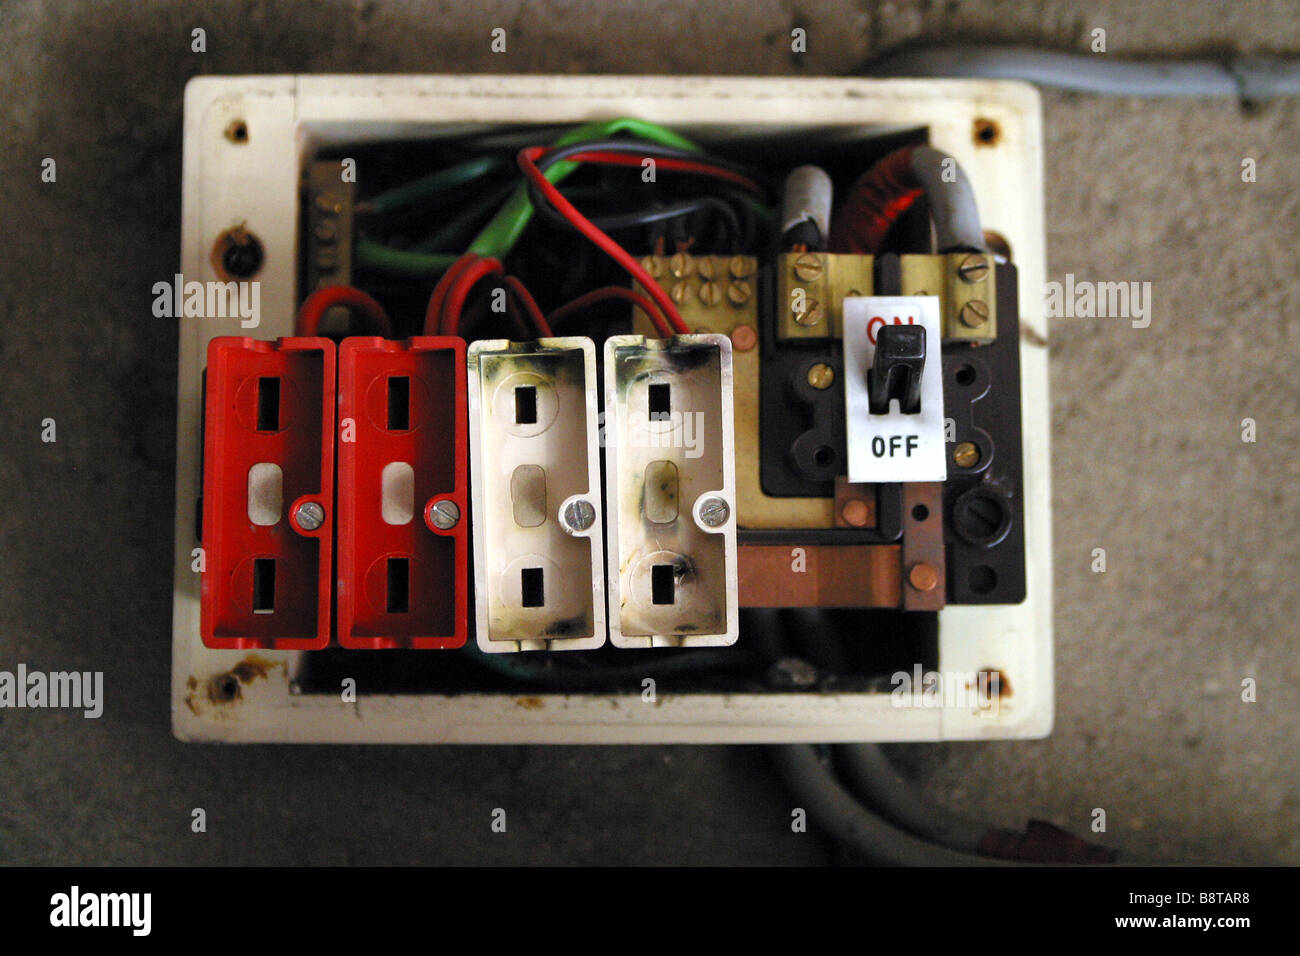 medium resolution of blown fuse in breaker box circuit diagram schema old house fuse box burnt fuse box home